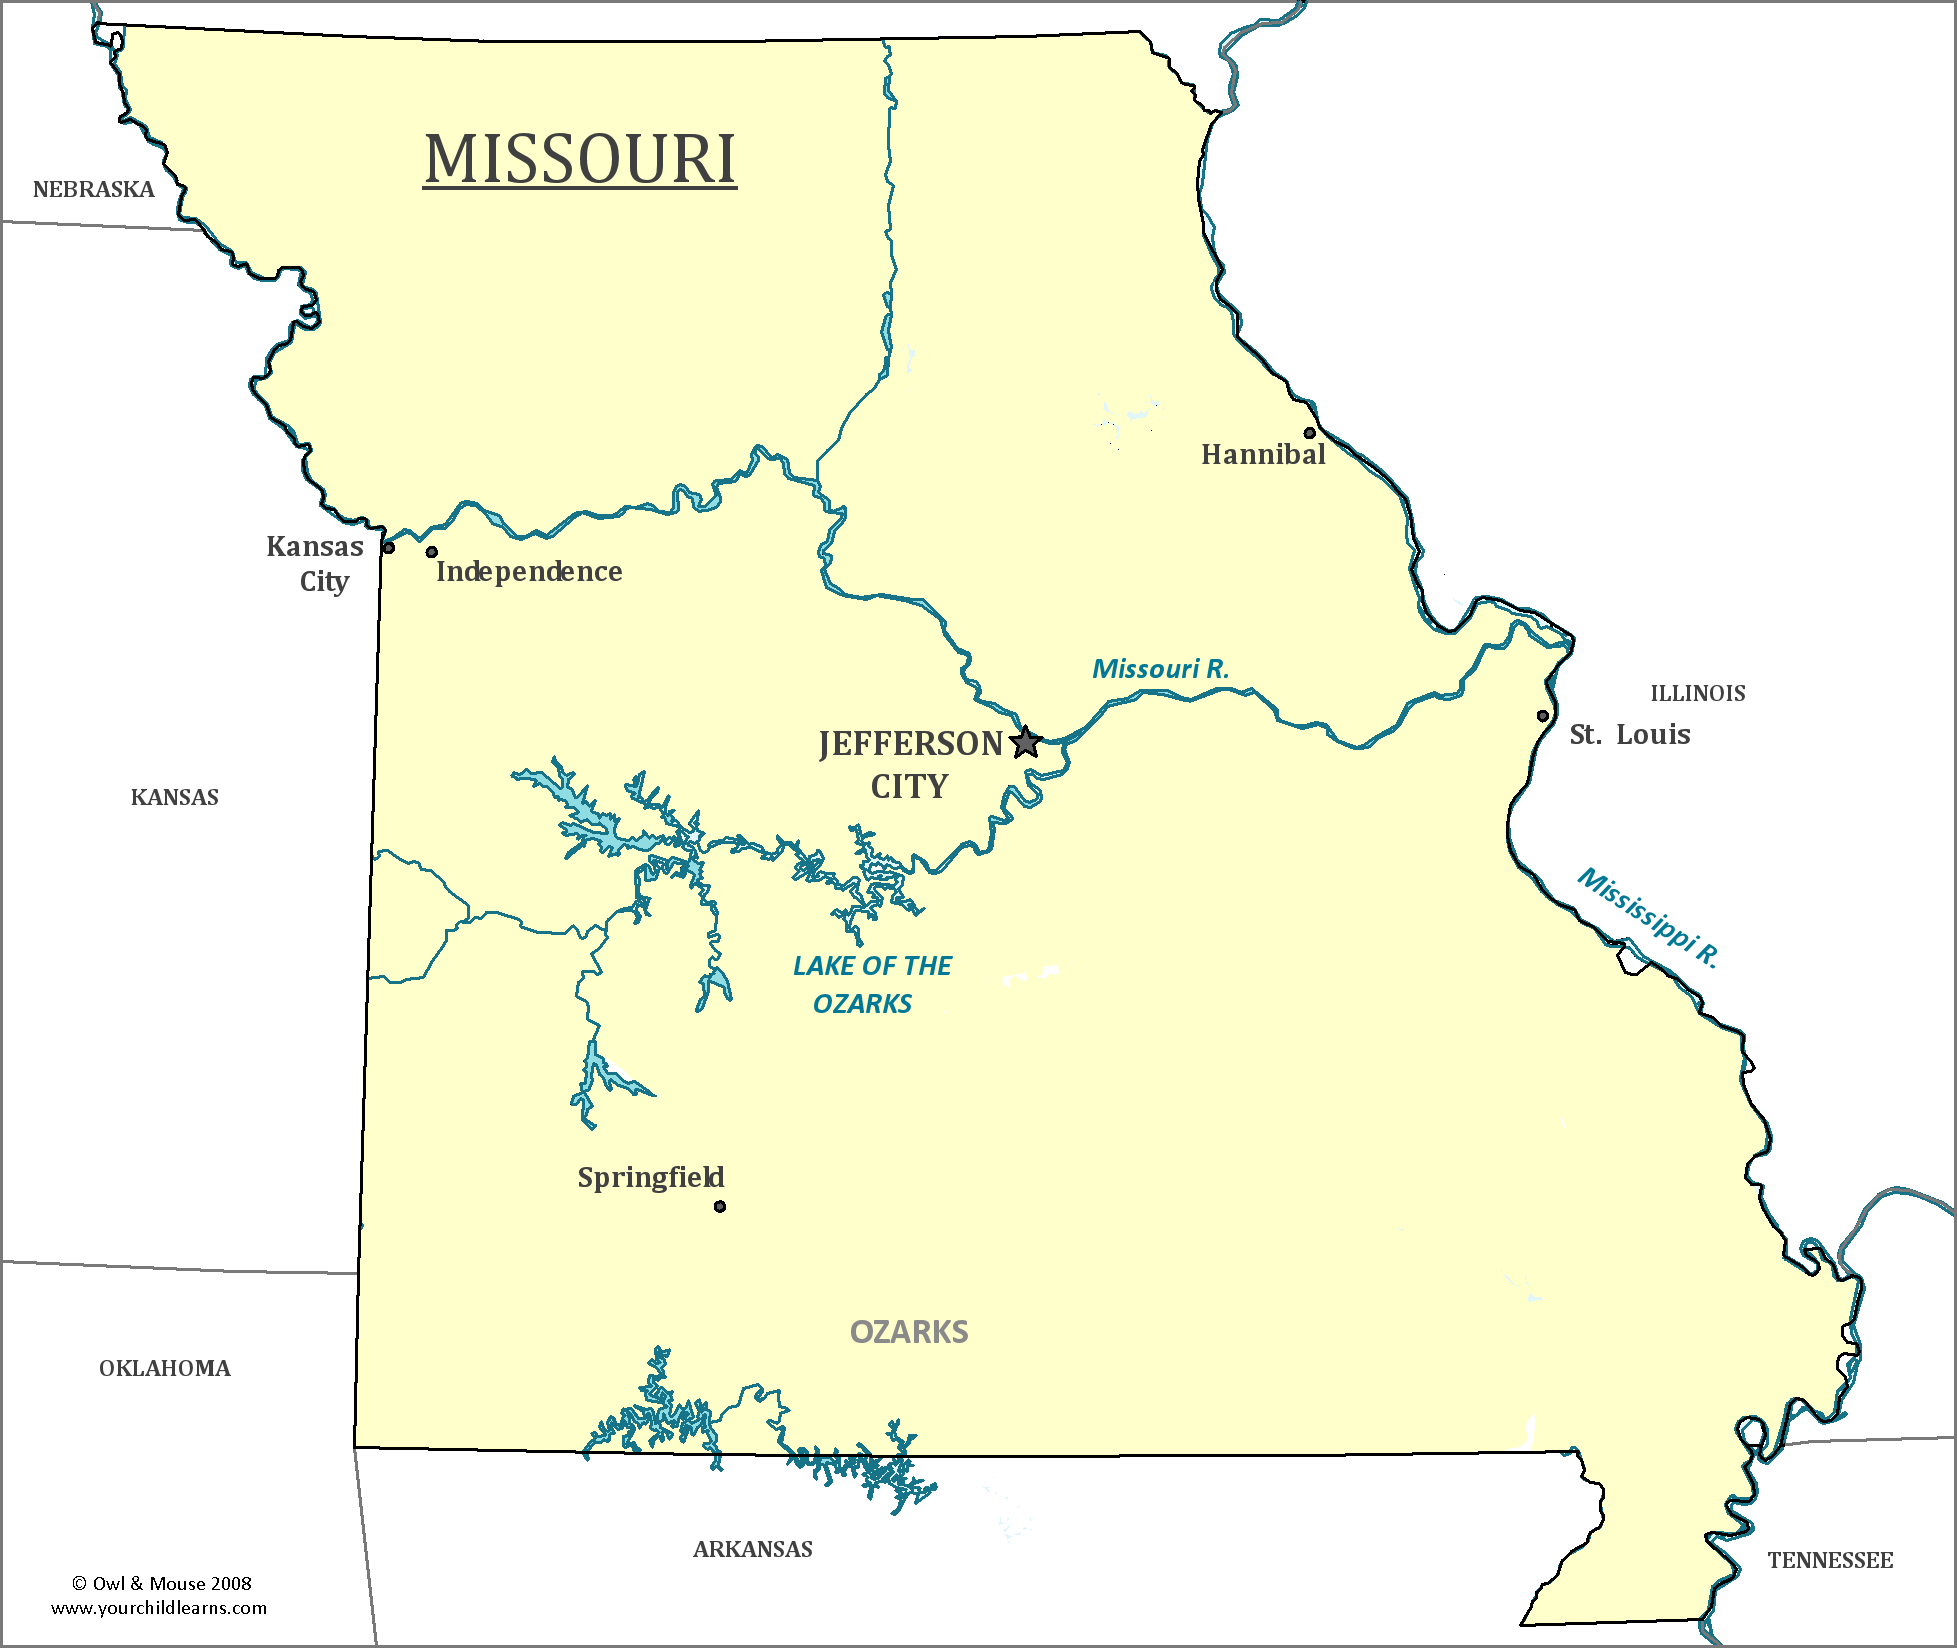 Missouri State Map Map Of Missouri And Information About The State - Missouri state map with cities